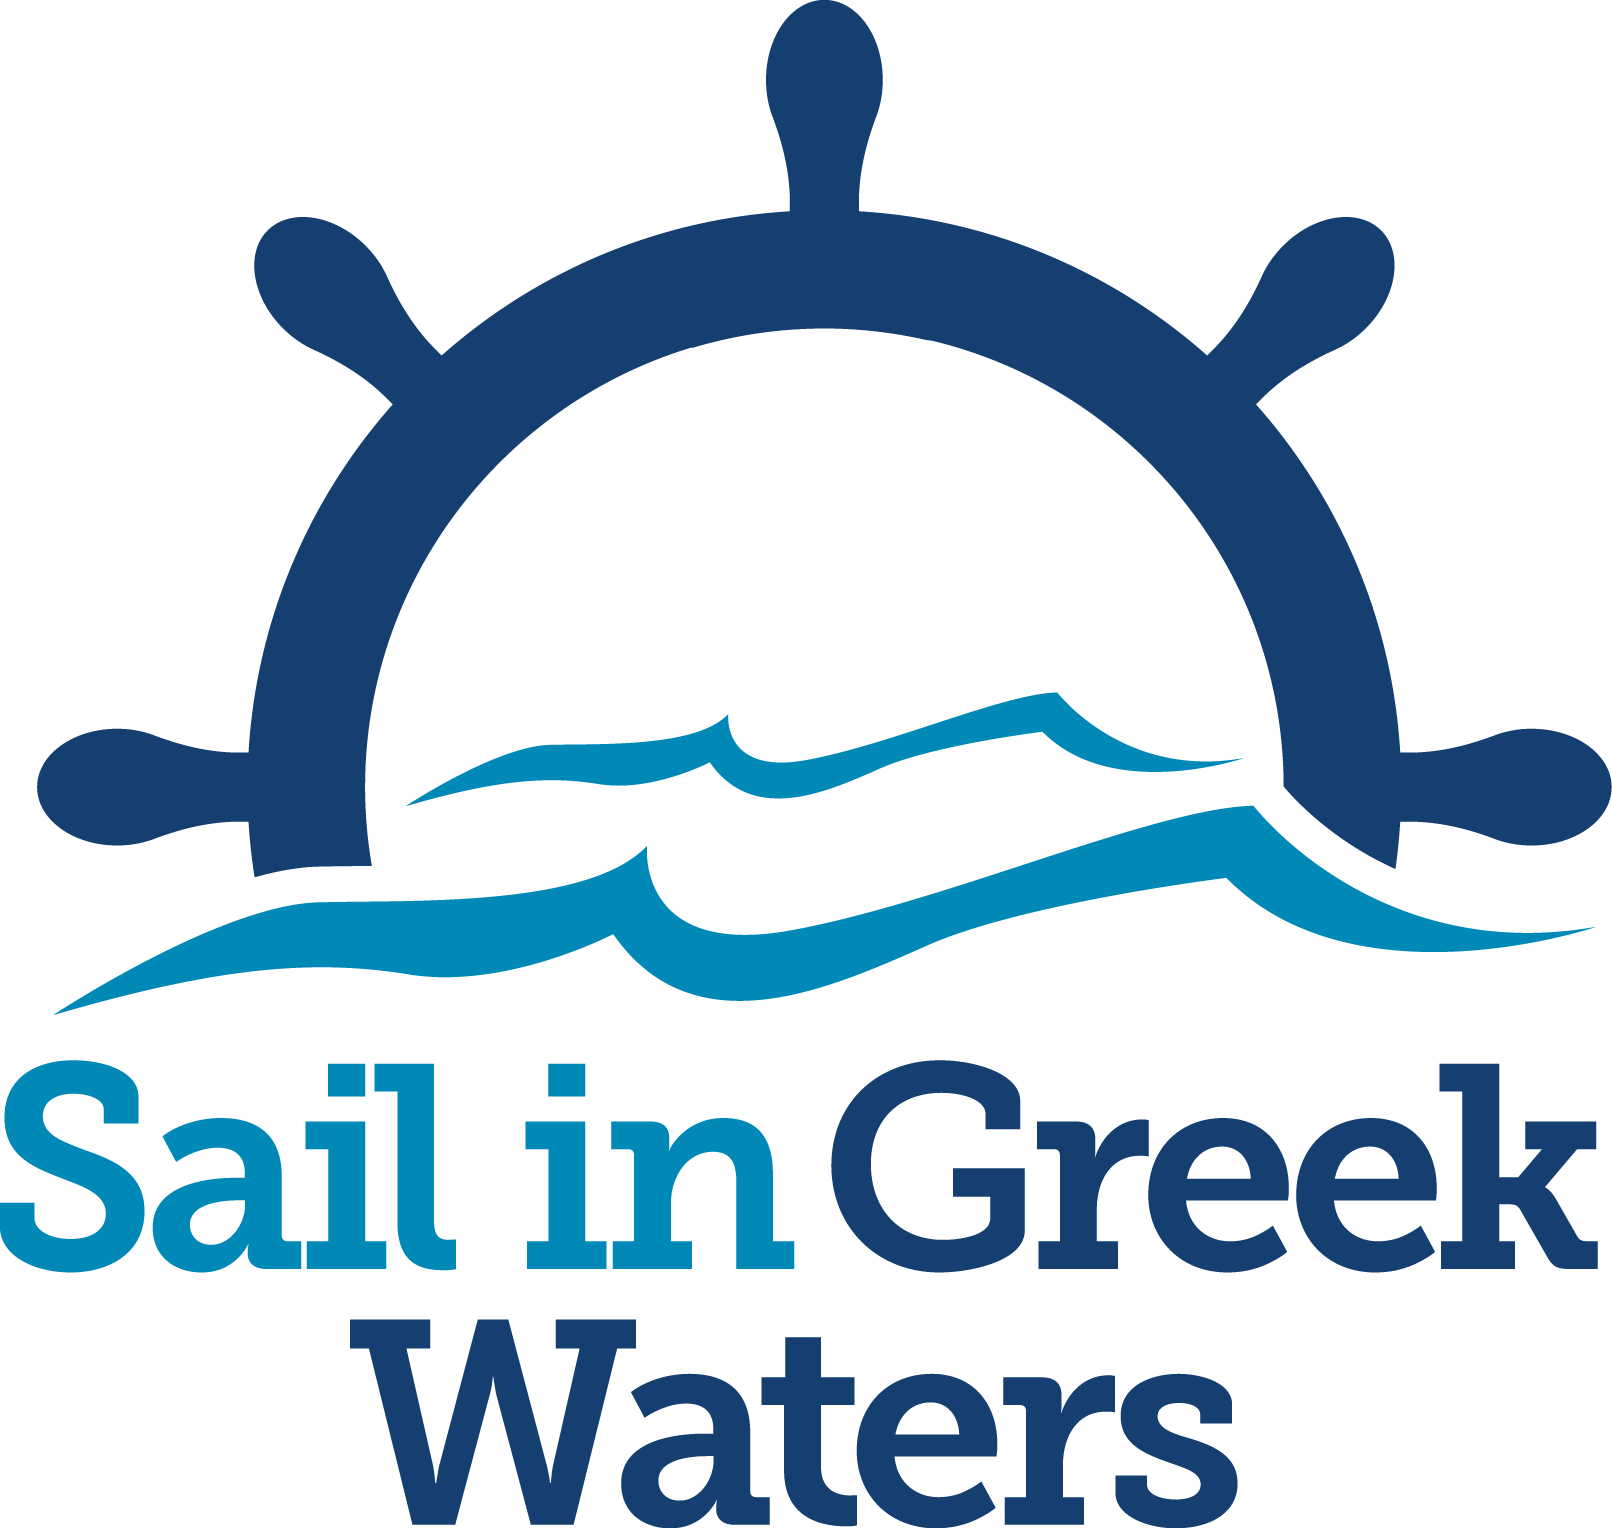 Sail in Greek Waters logo